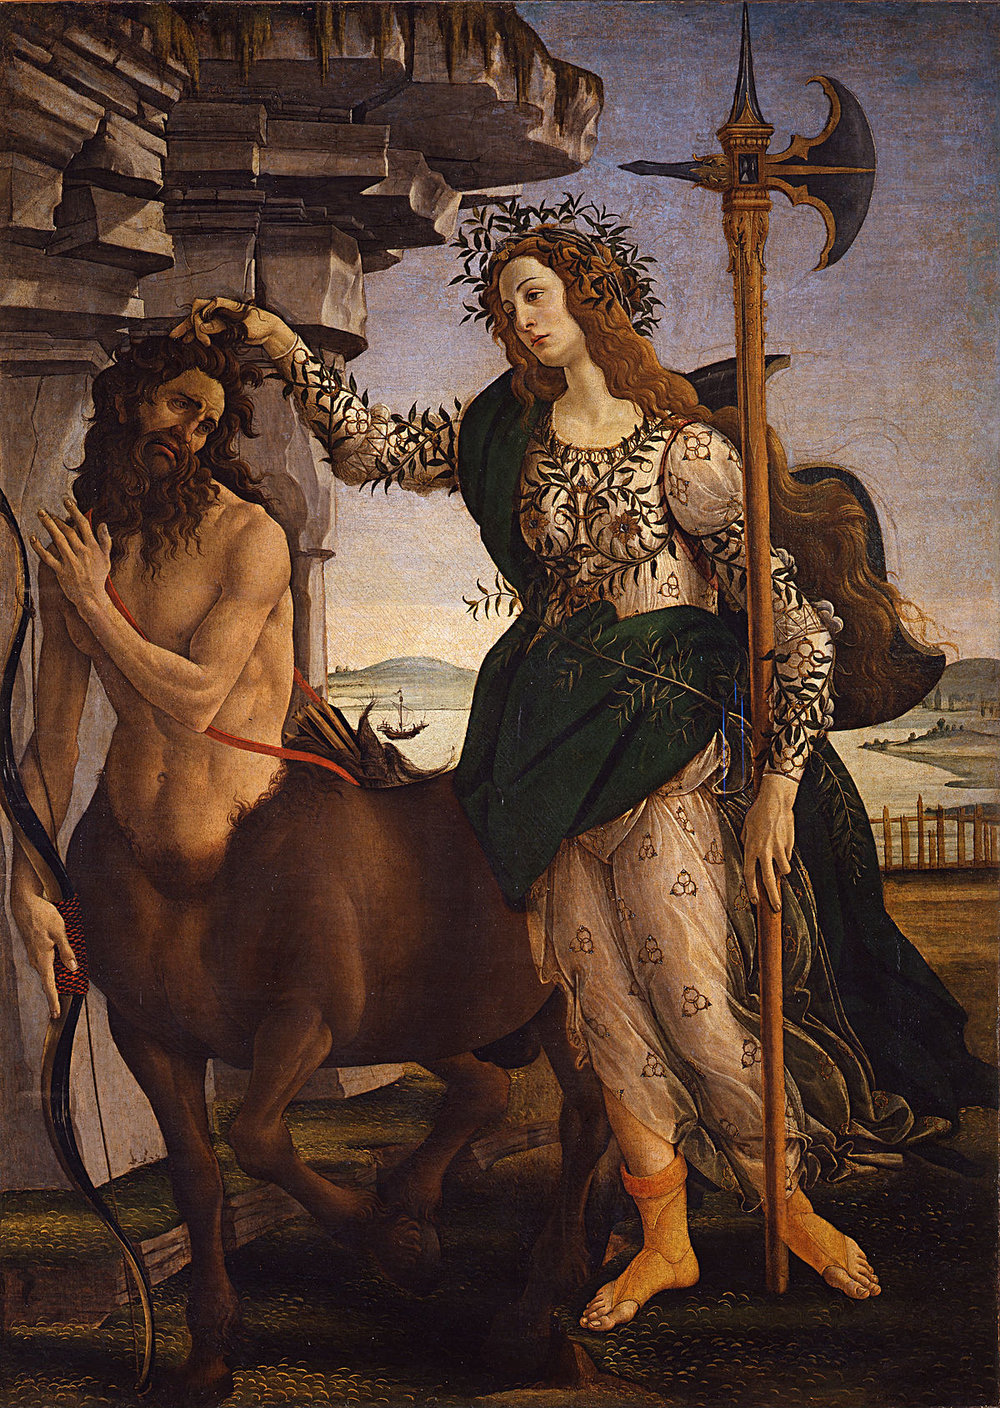 Sandro Botticelli | Pallas and the Centaur | 1418 | sourced via Wikimedia.com